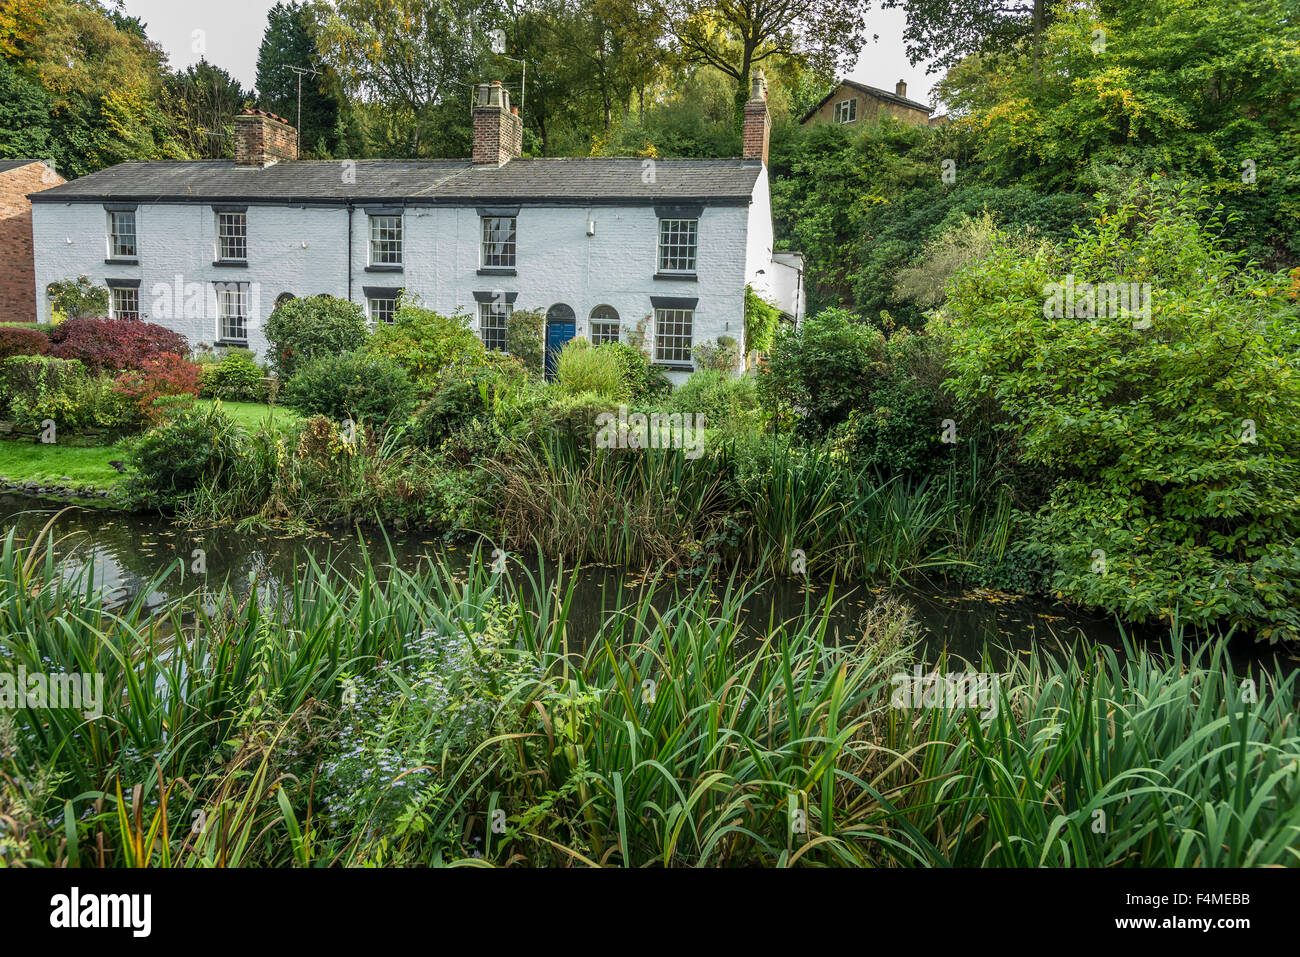 The Grove cottages in Lymm near Warrington. Cheshire North West England. - Stock Image